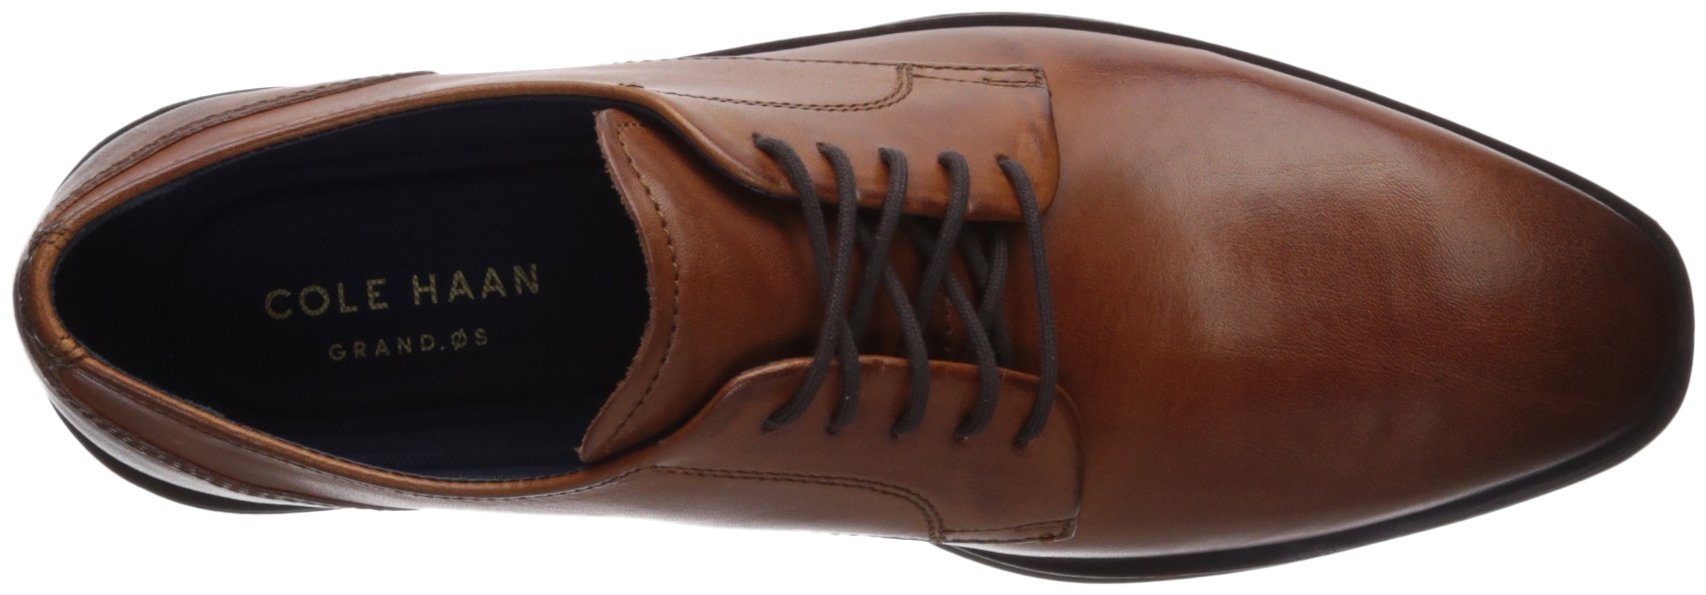 Cole Haan Men's Dawes Grand Plain Toe Oxford, British Tan, 11 Medium US by Cole Haan (Image #7)